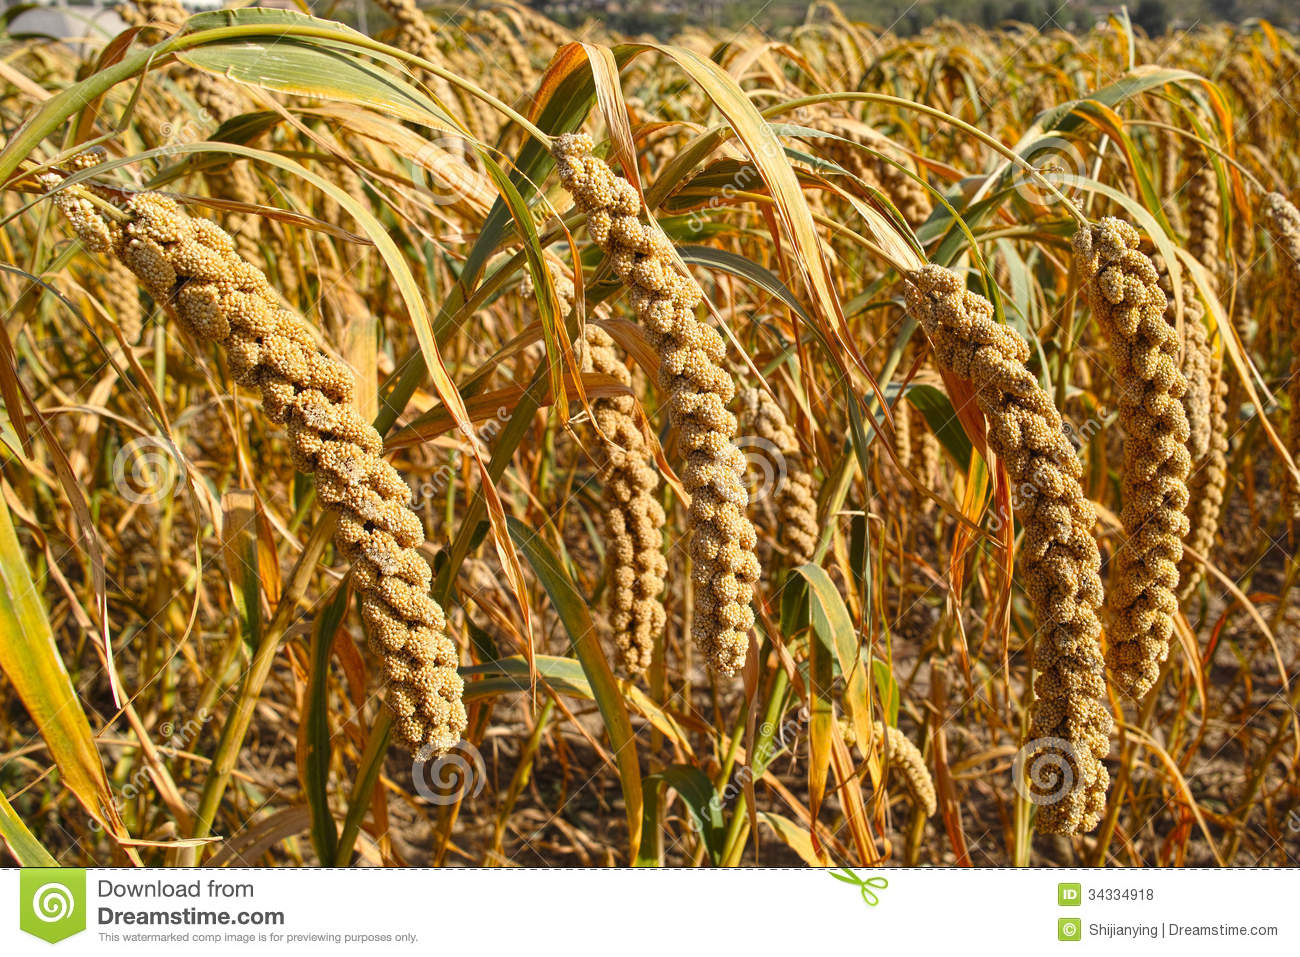 Millet Royalty Free Stock Photos - Image: 34334918: www.dreamstime.com/royalty-free-stock-photos-millet-close-up-mature...